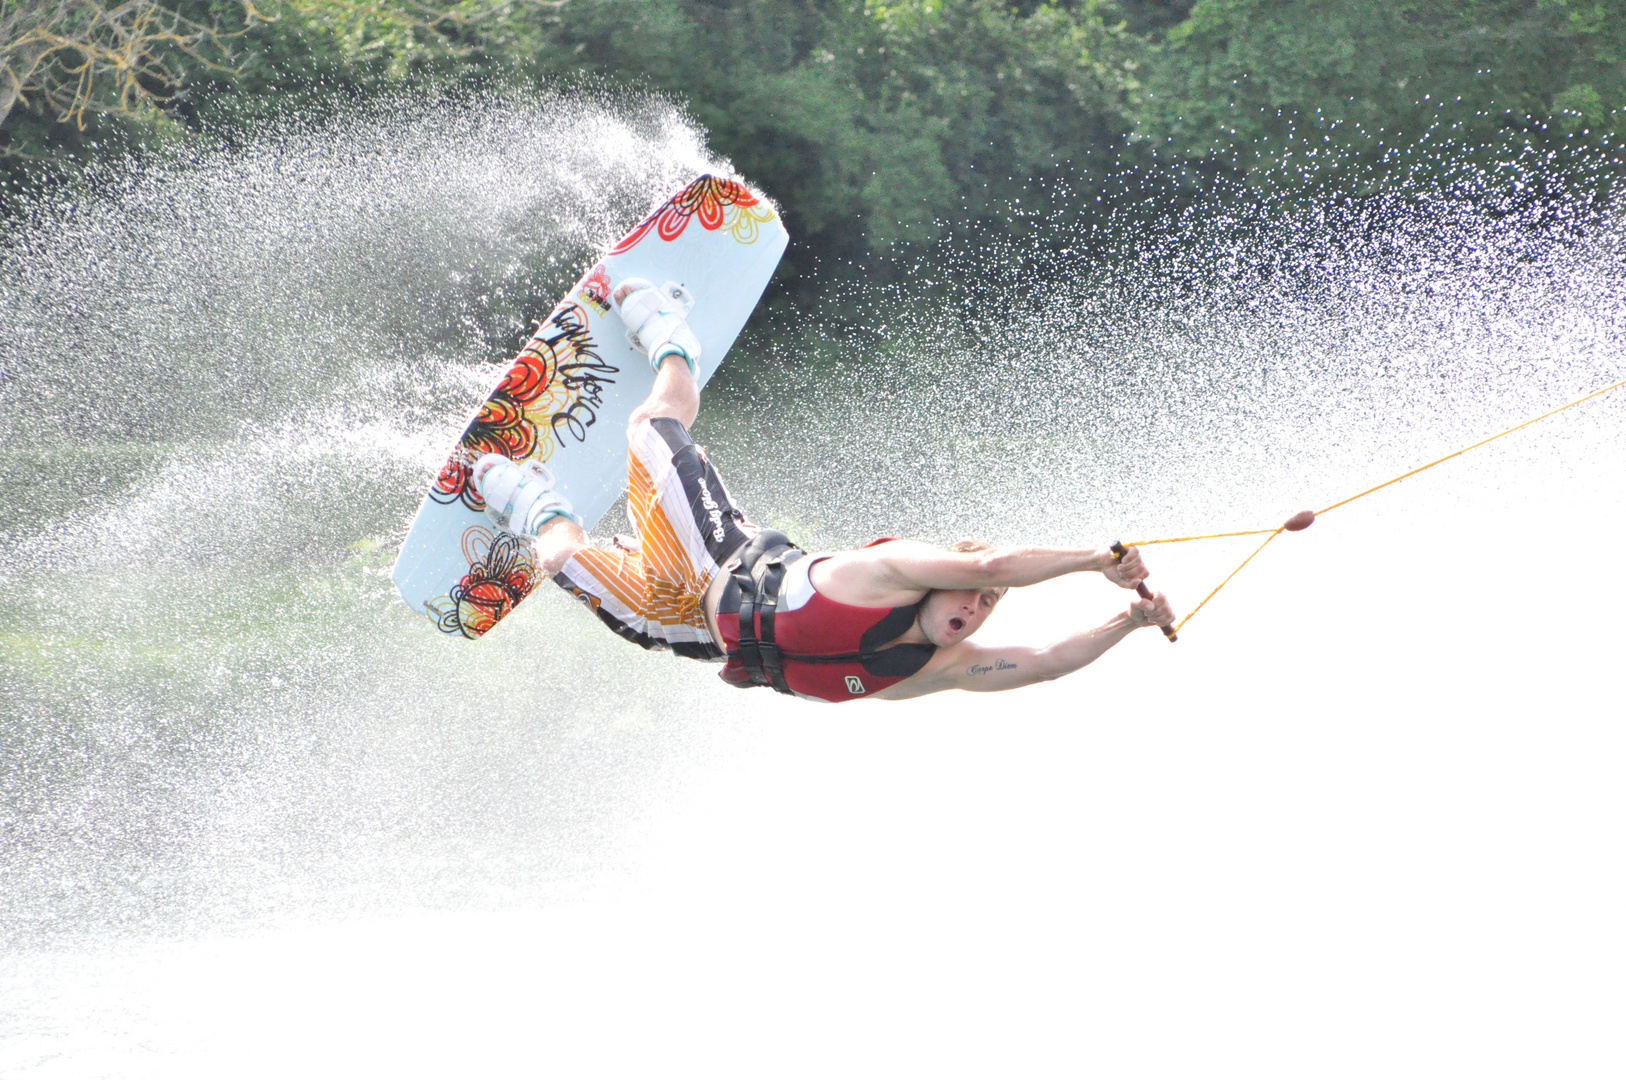 Wakeboard-Artist in Action